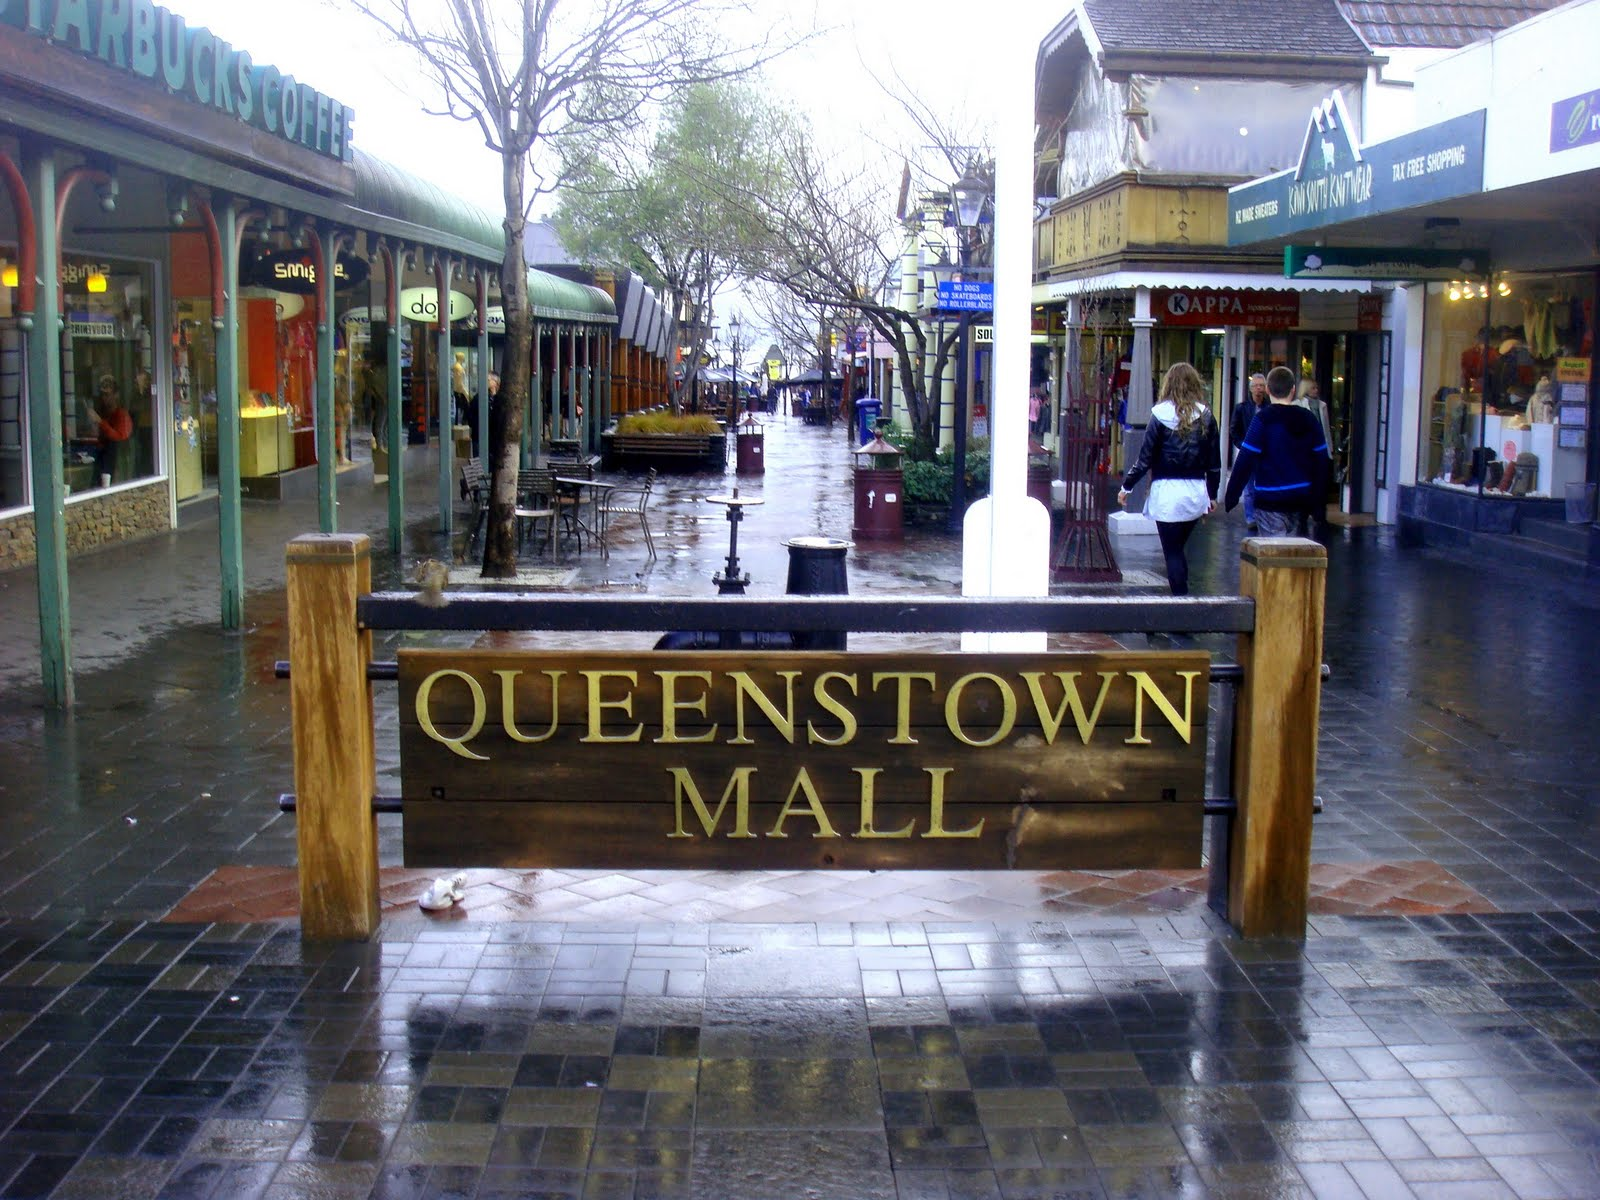 Shopping in Queenstown. Queenstown is all about top notch shopping experiences surrounded by movie-star landscapes. An art gallery in Queenstown, Queenstown. By Chris McLennan. Hit the shops, Queenstown. By Tourism New Zealand. A local market by Lake Wakatipu, Queenstown. By .